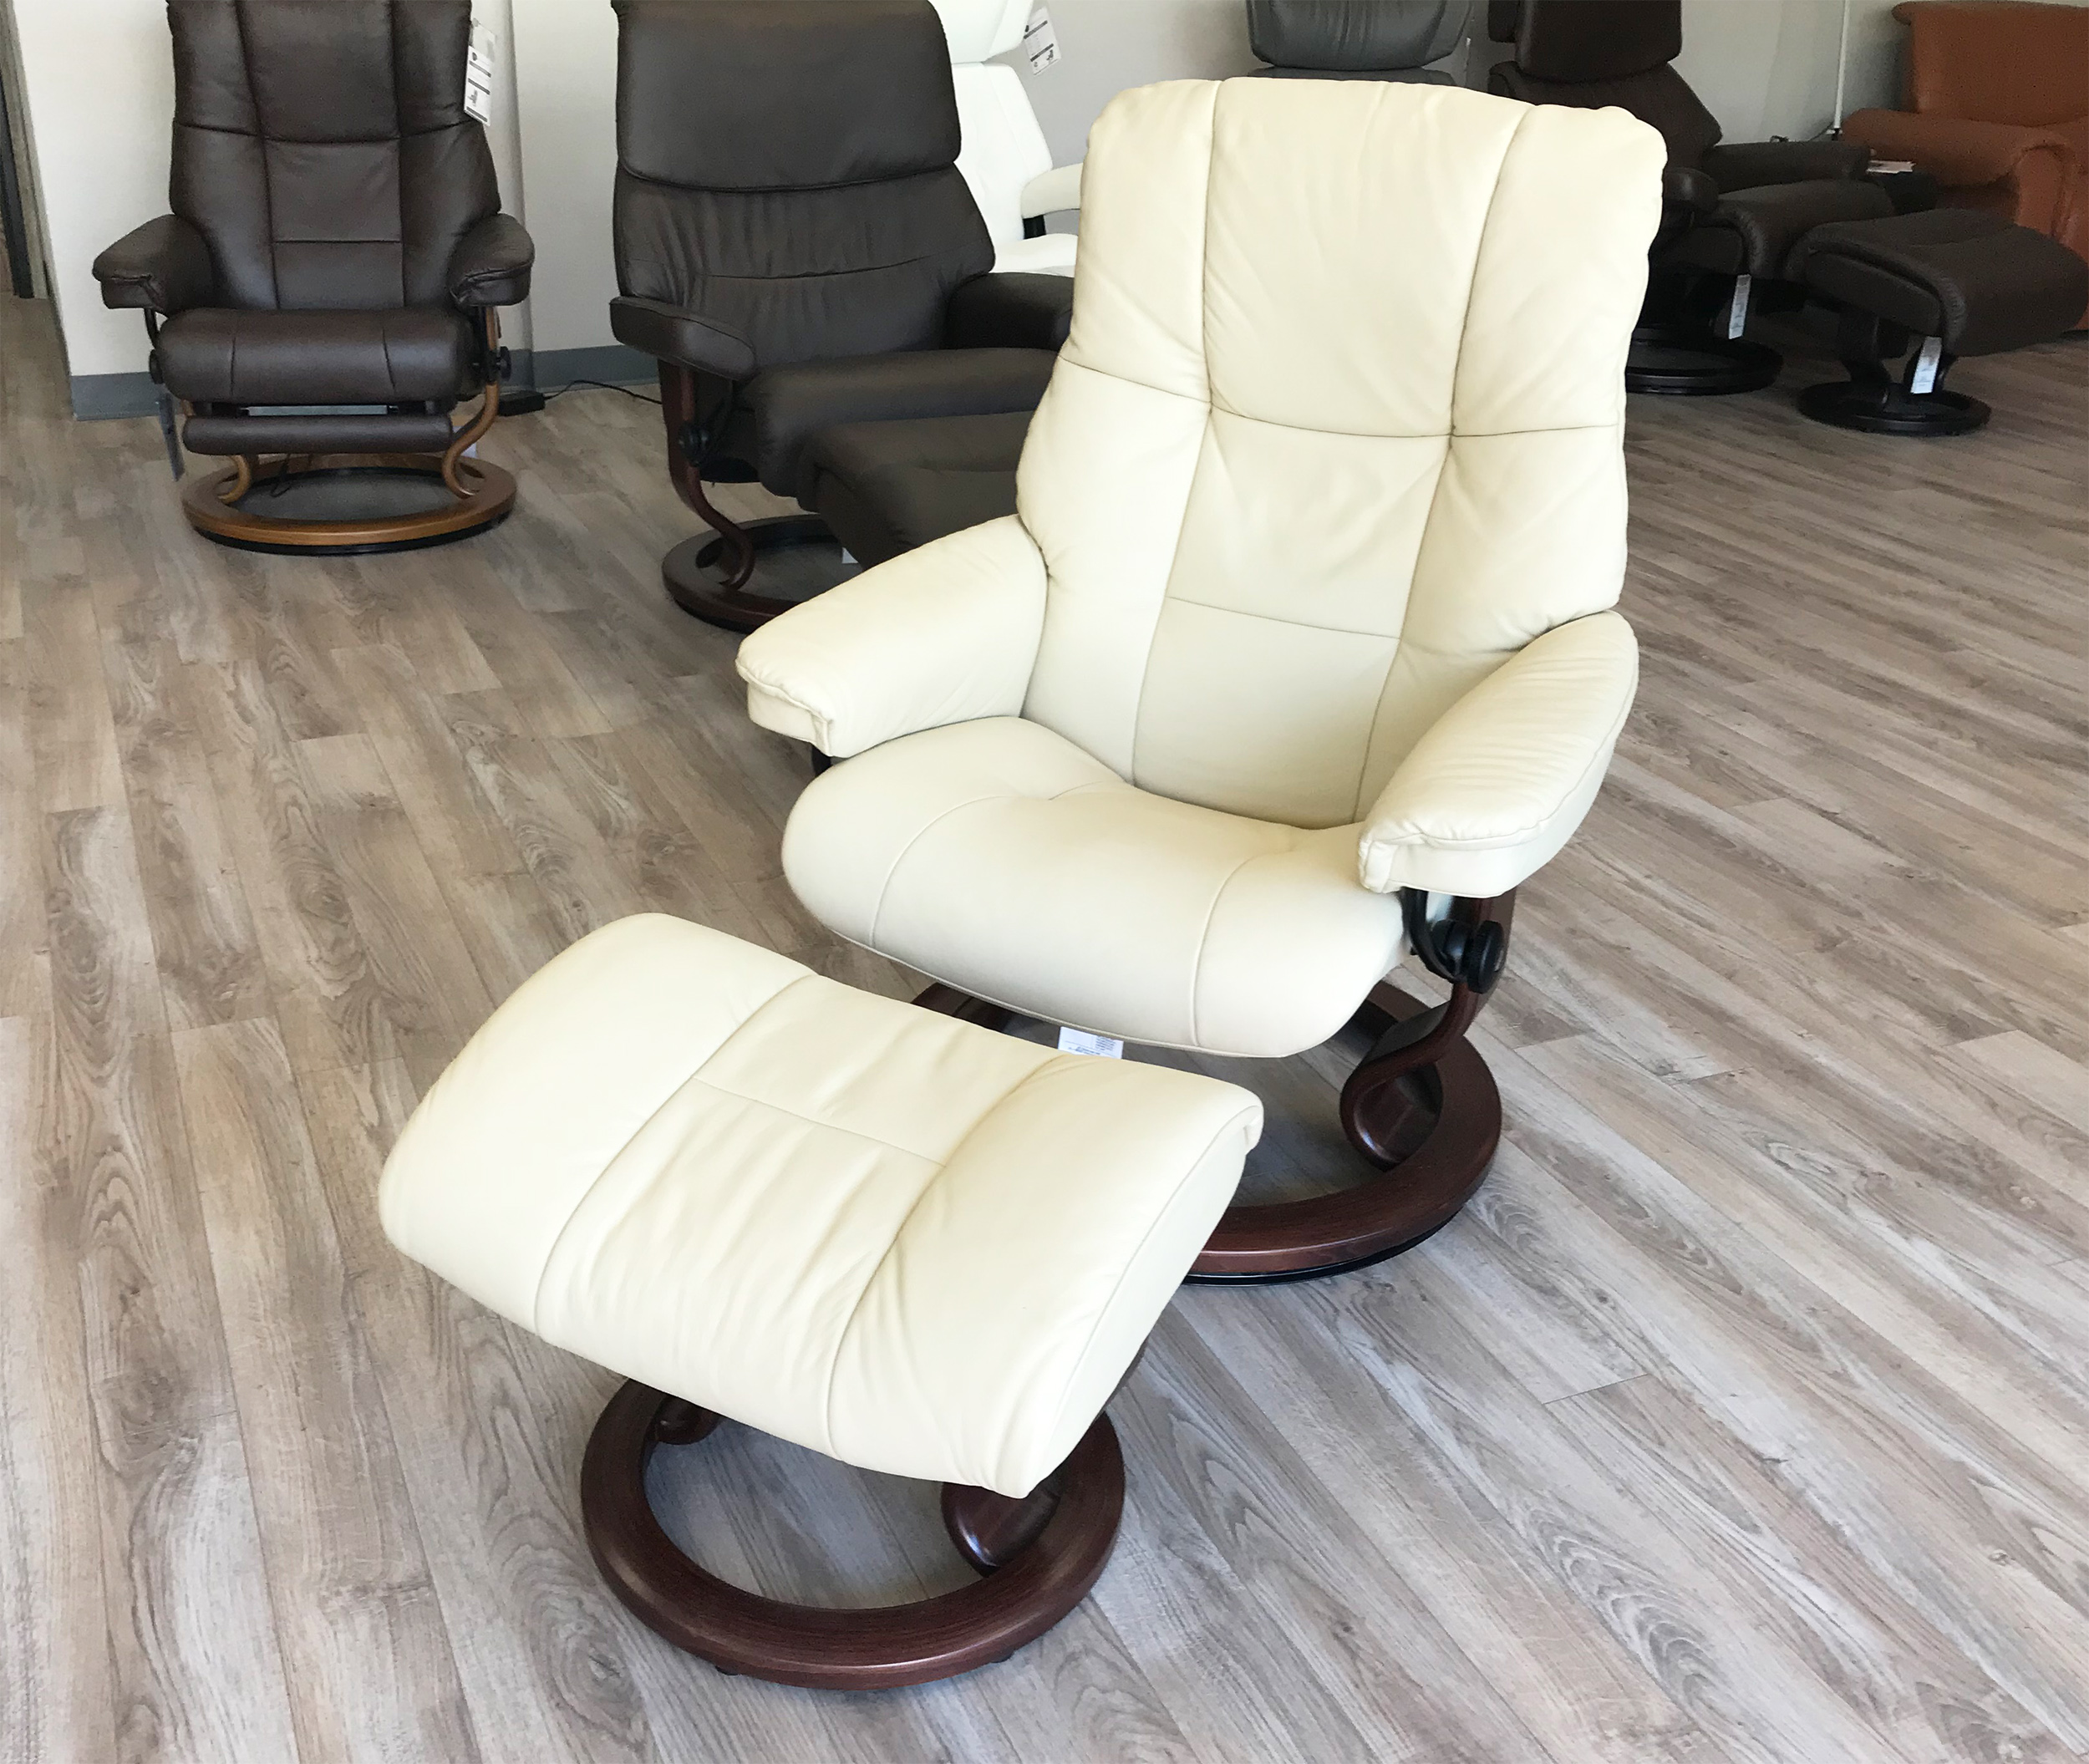 Pleasant Stressless Chelsea Small Mayfair Paloma Kitt Leather Recliner Chair And Ottoman By Ekornes Pdpeps Interior Chair Design Pdpepsorg